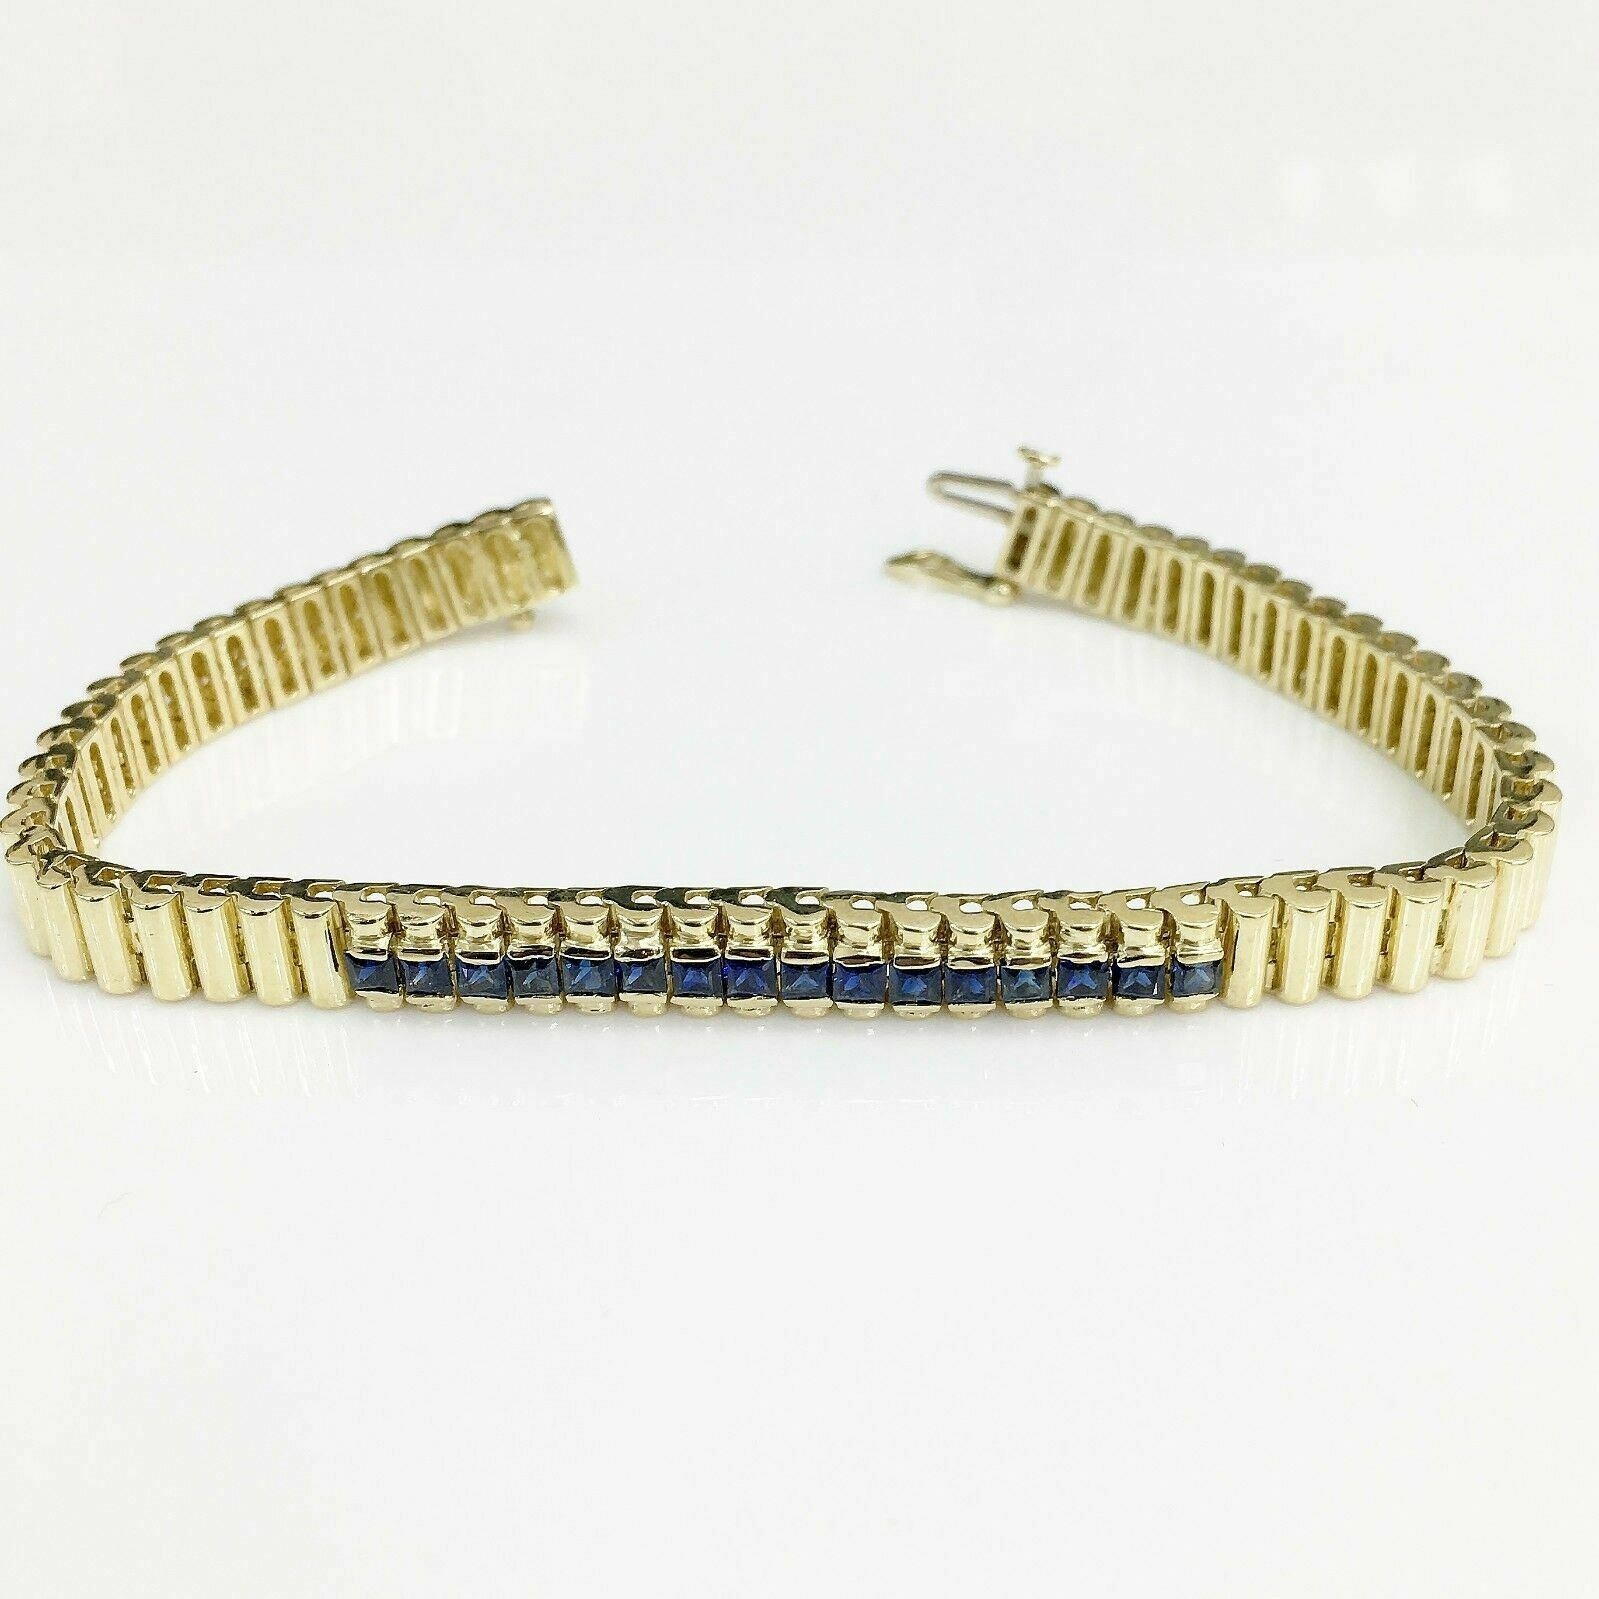 2.25Carats t.w. Bankers Sapphire Tennis Bracelet Custom Made 14K Yellow Gold